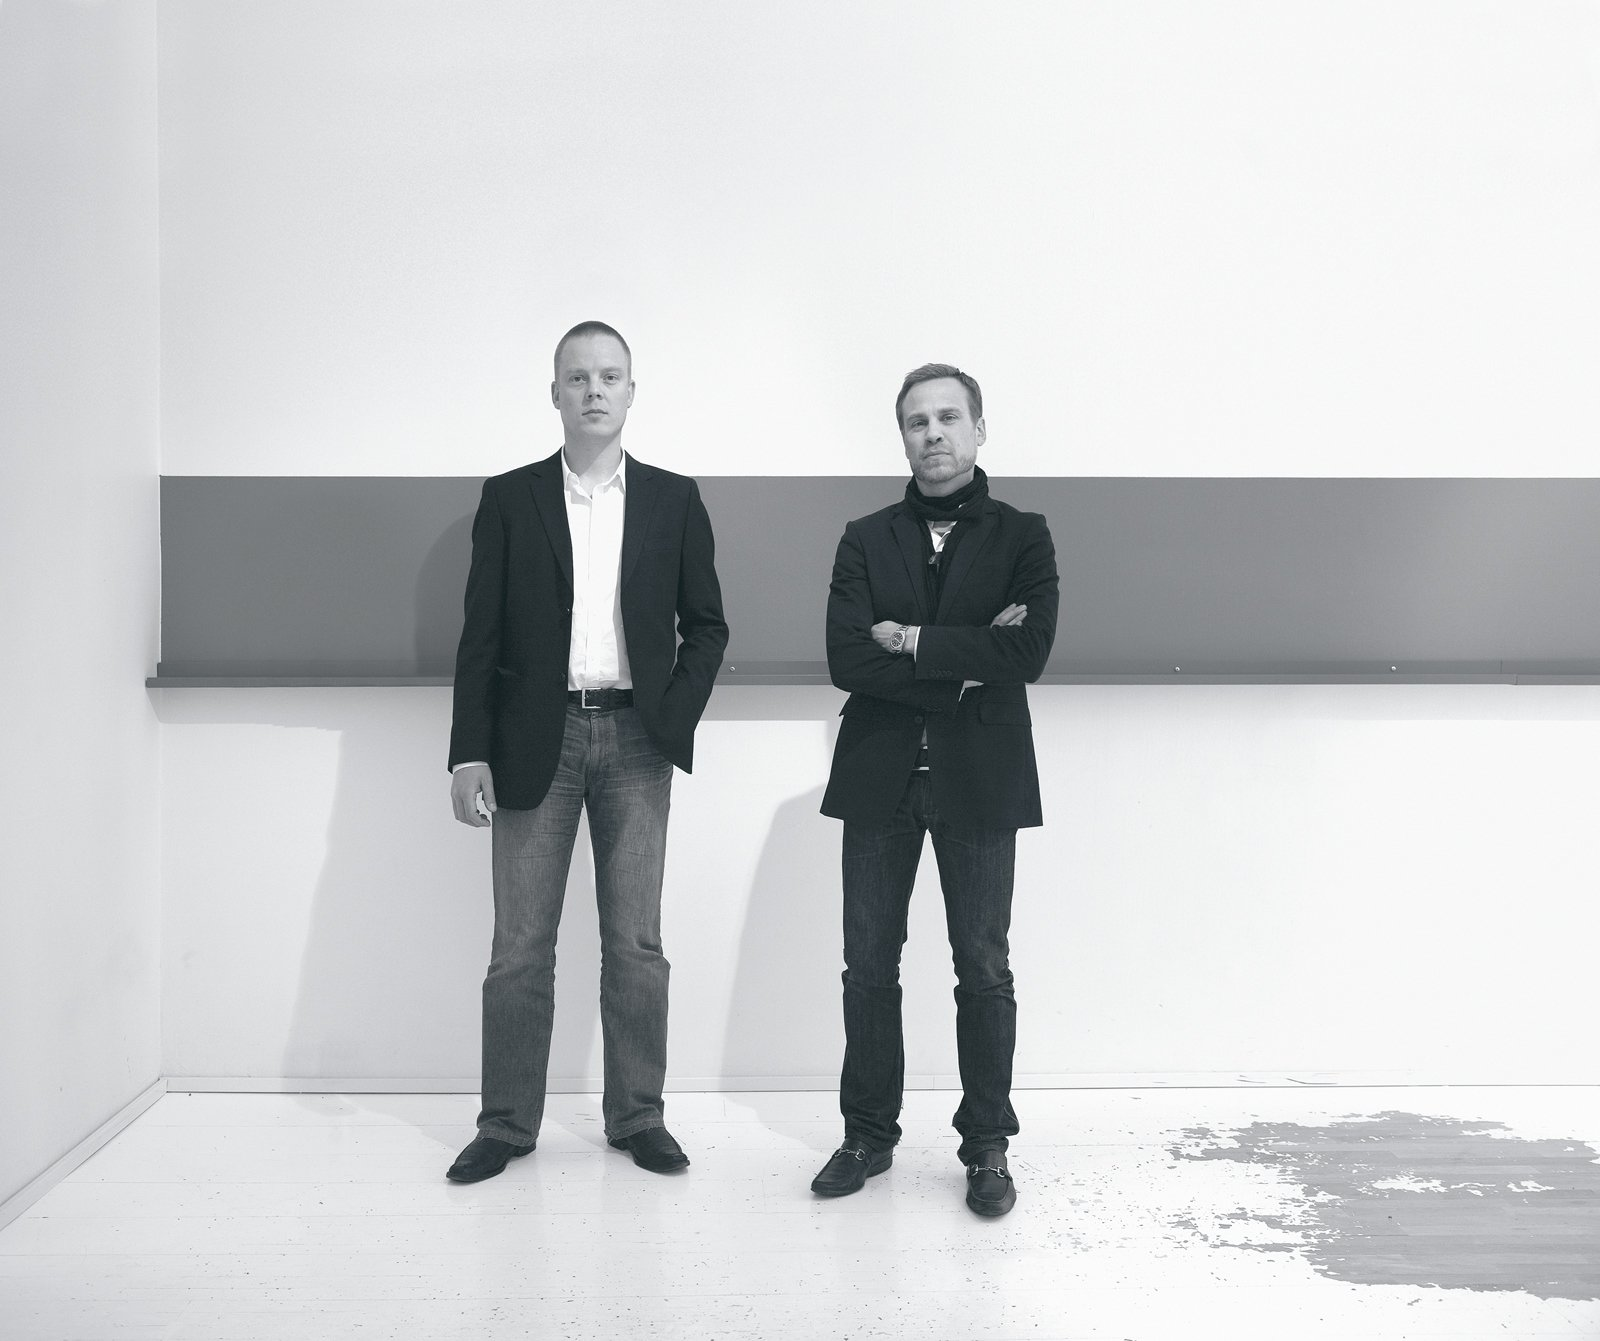 Anders Holmberg (right) and Carl-Johan Smedshammar take a moment to reflect on their work.